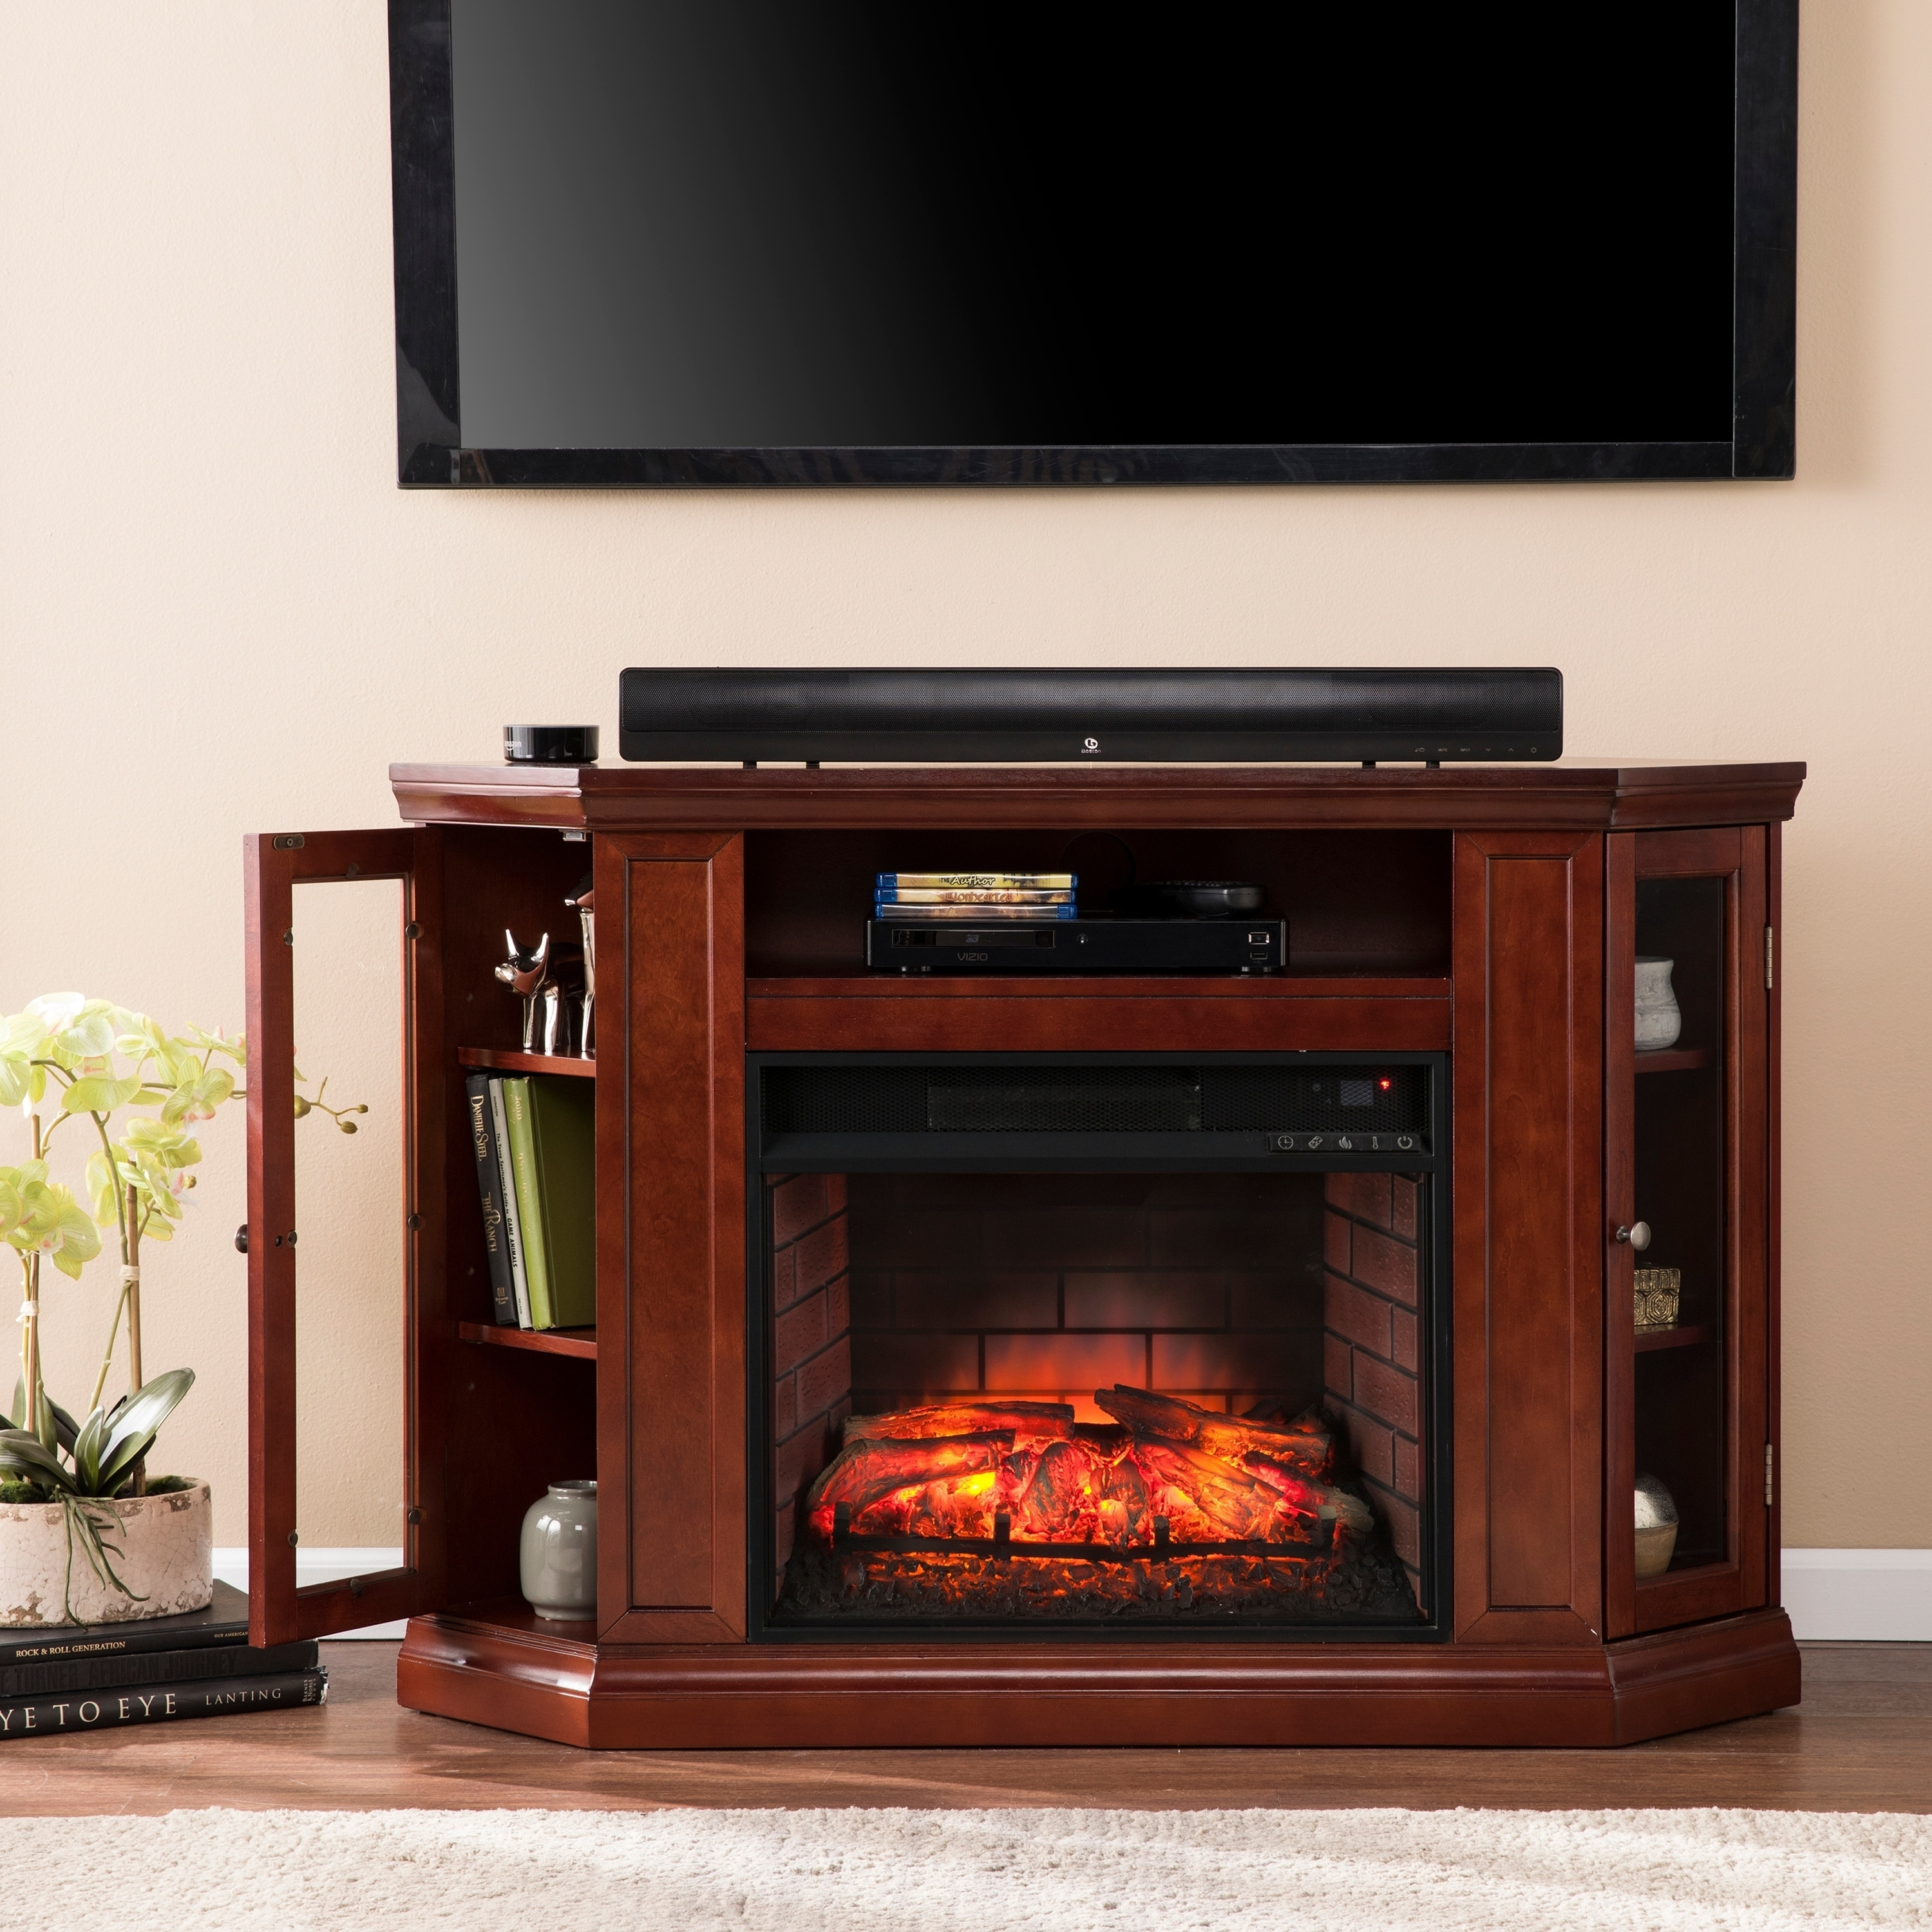 Copper Grove Shelburne Cherry Convertible Media Infrared Fireplace (OS0139IF)